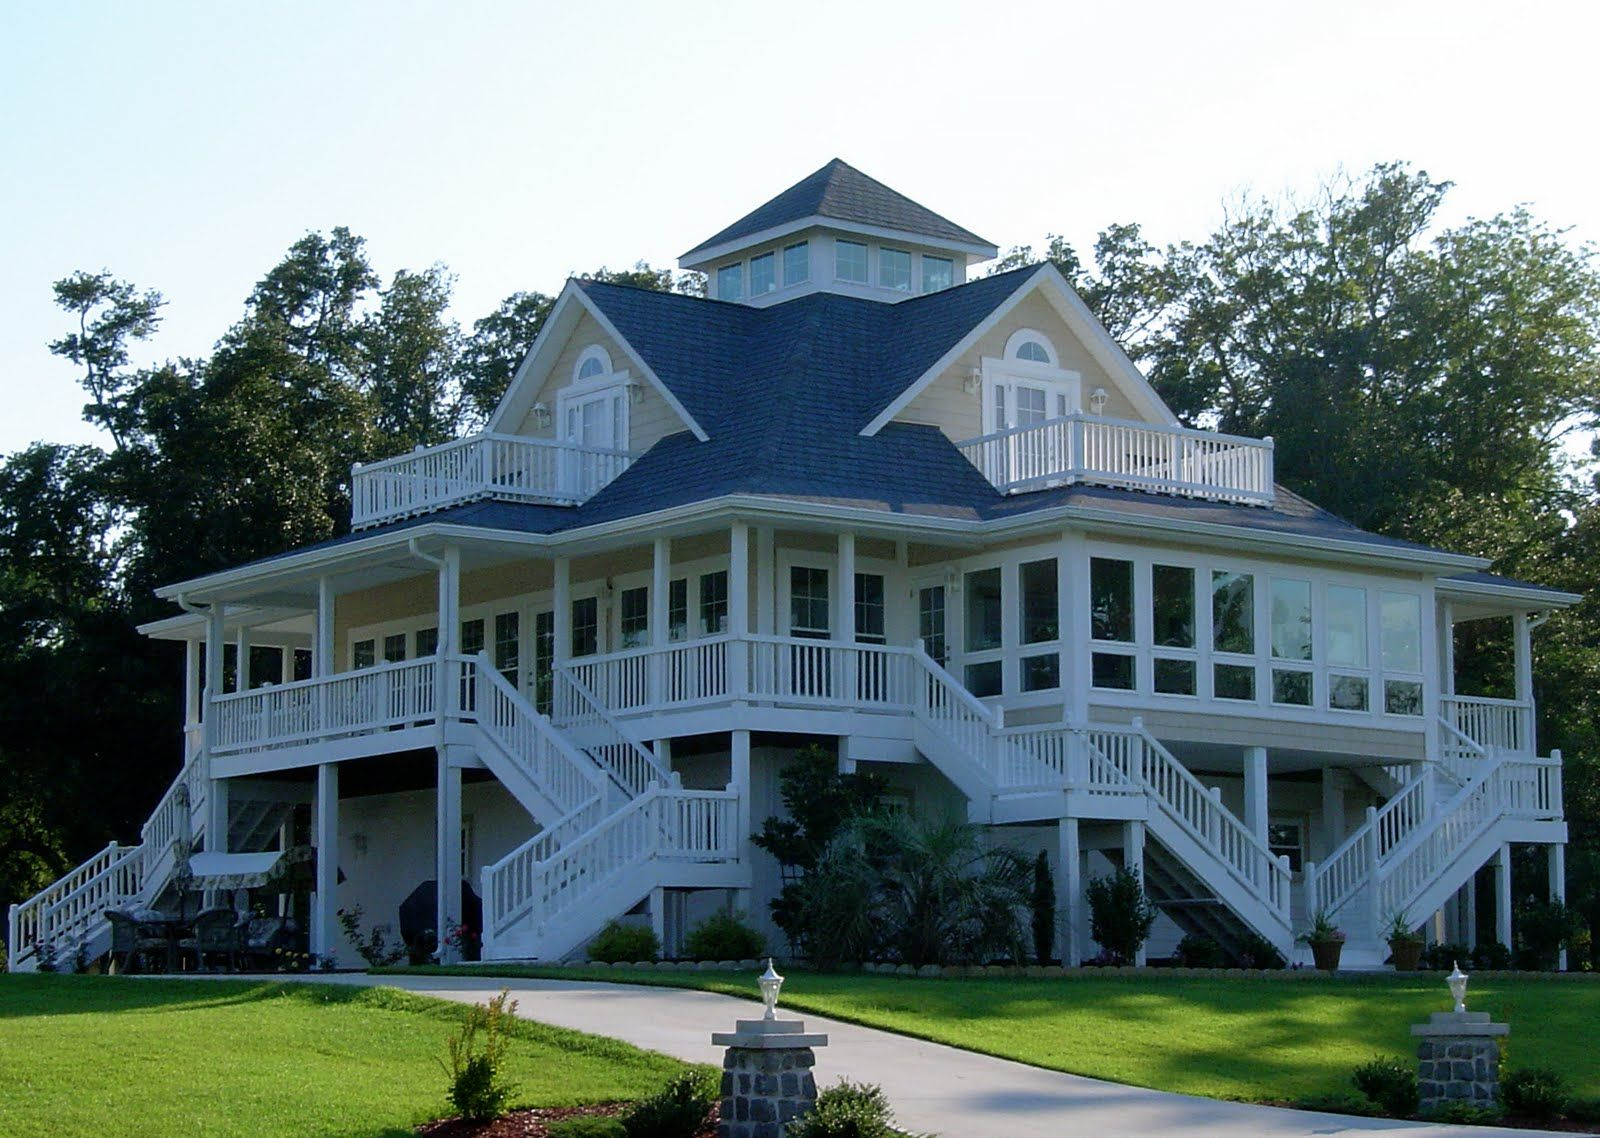 SOUTHERN COTTAGES HOUSE PLANS: The Island Cottage: Wrap Around Porch Floor Plans, Country House Plans With Porches, Southern Living House Plans